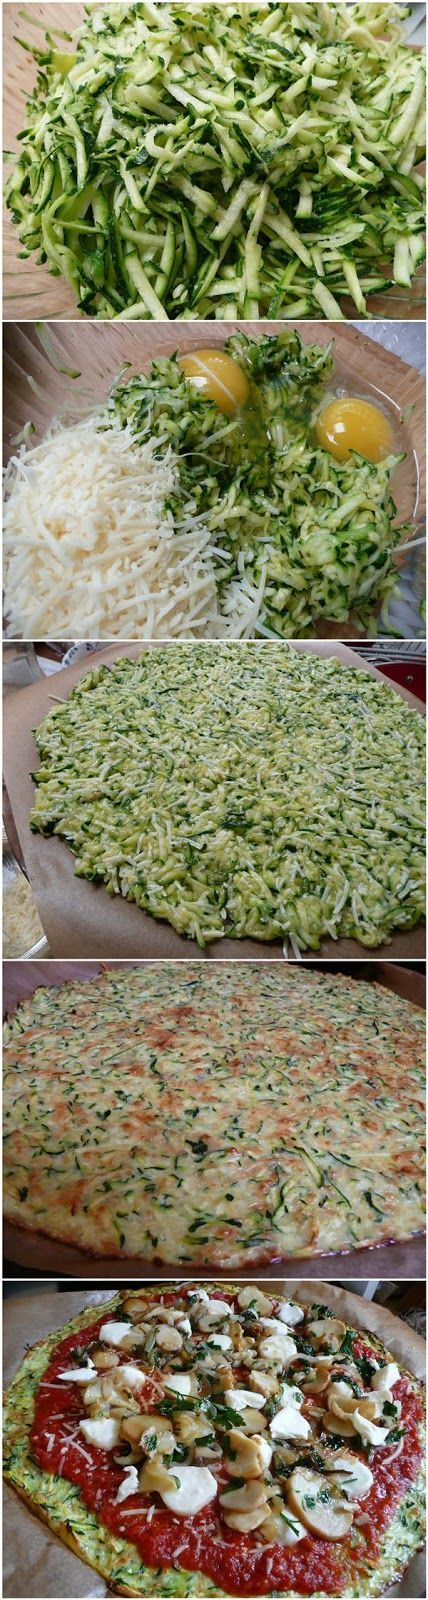 Zucchini Crust Pizza--I'm willing to try this!